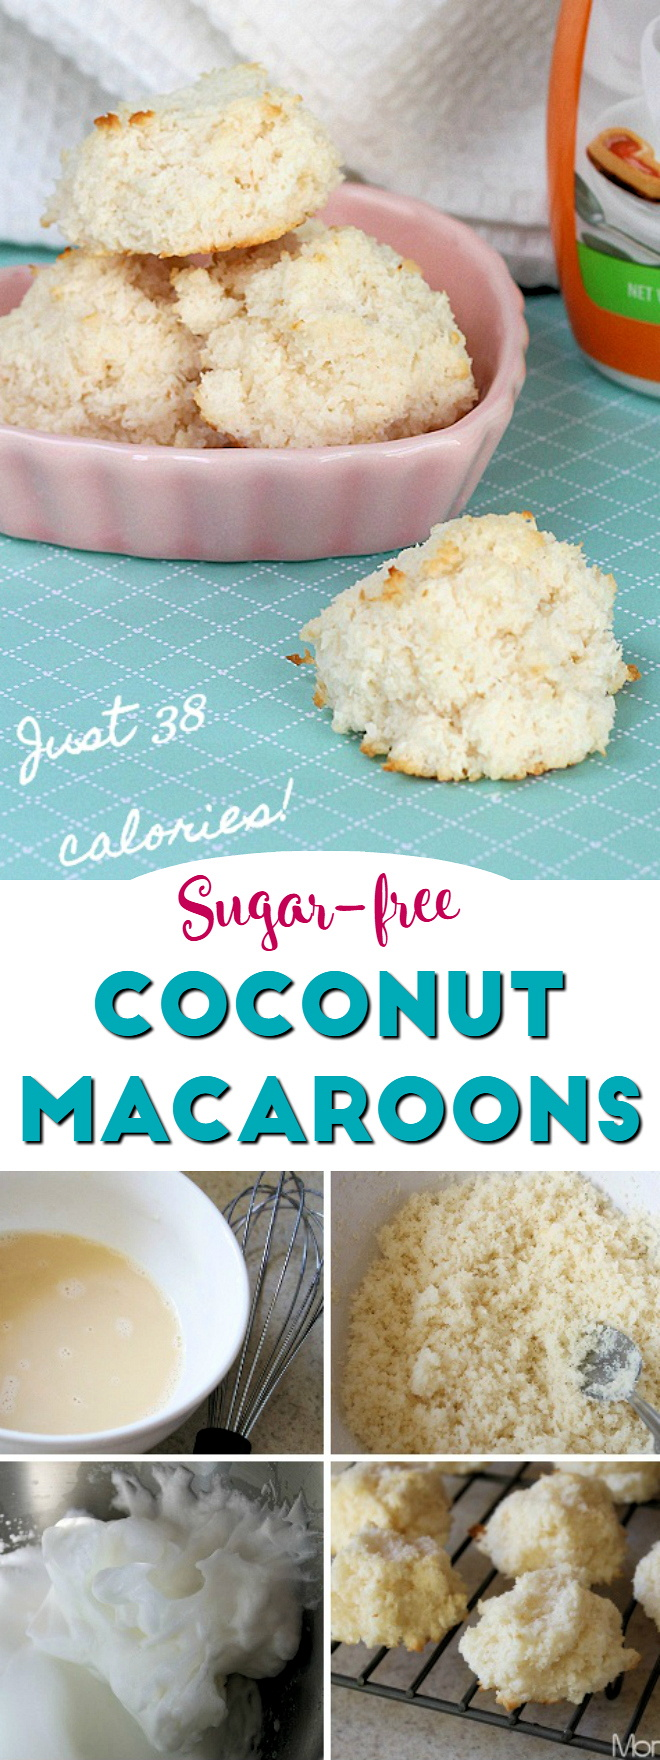 Sugar-Free Coconut Macaroons : low carb, 38 calories each